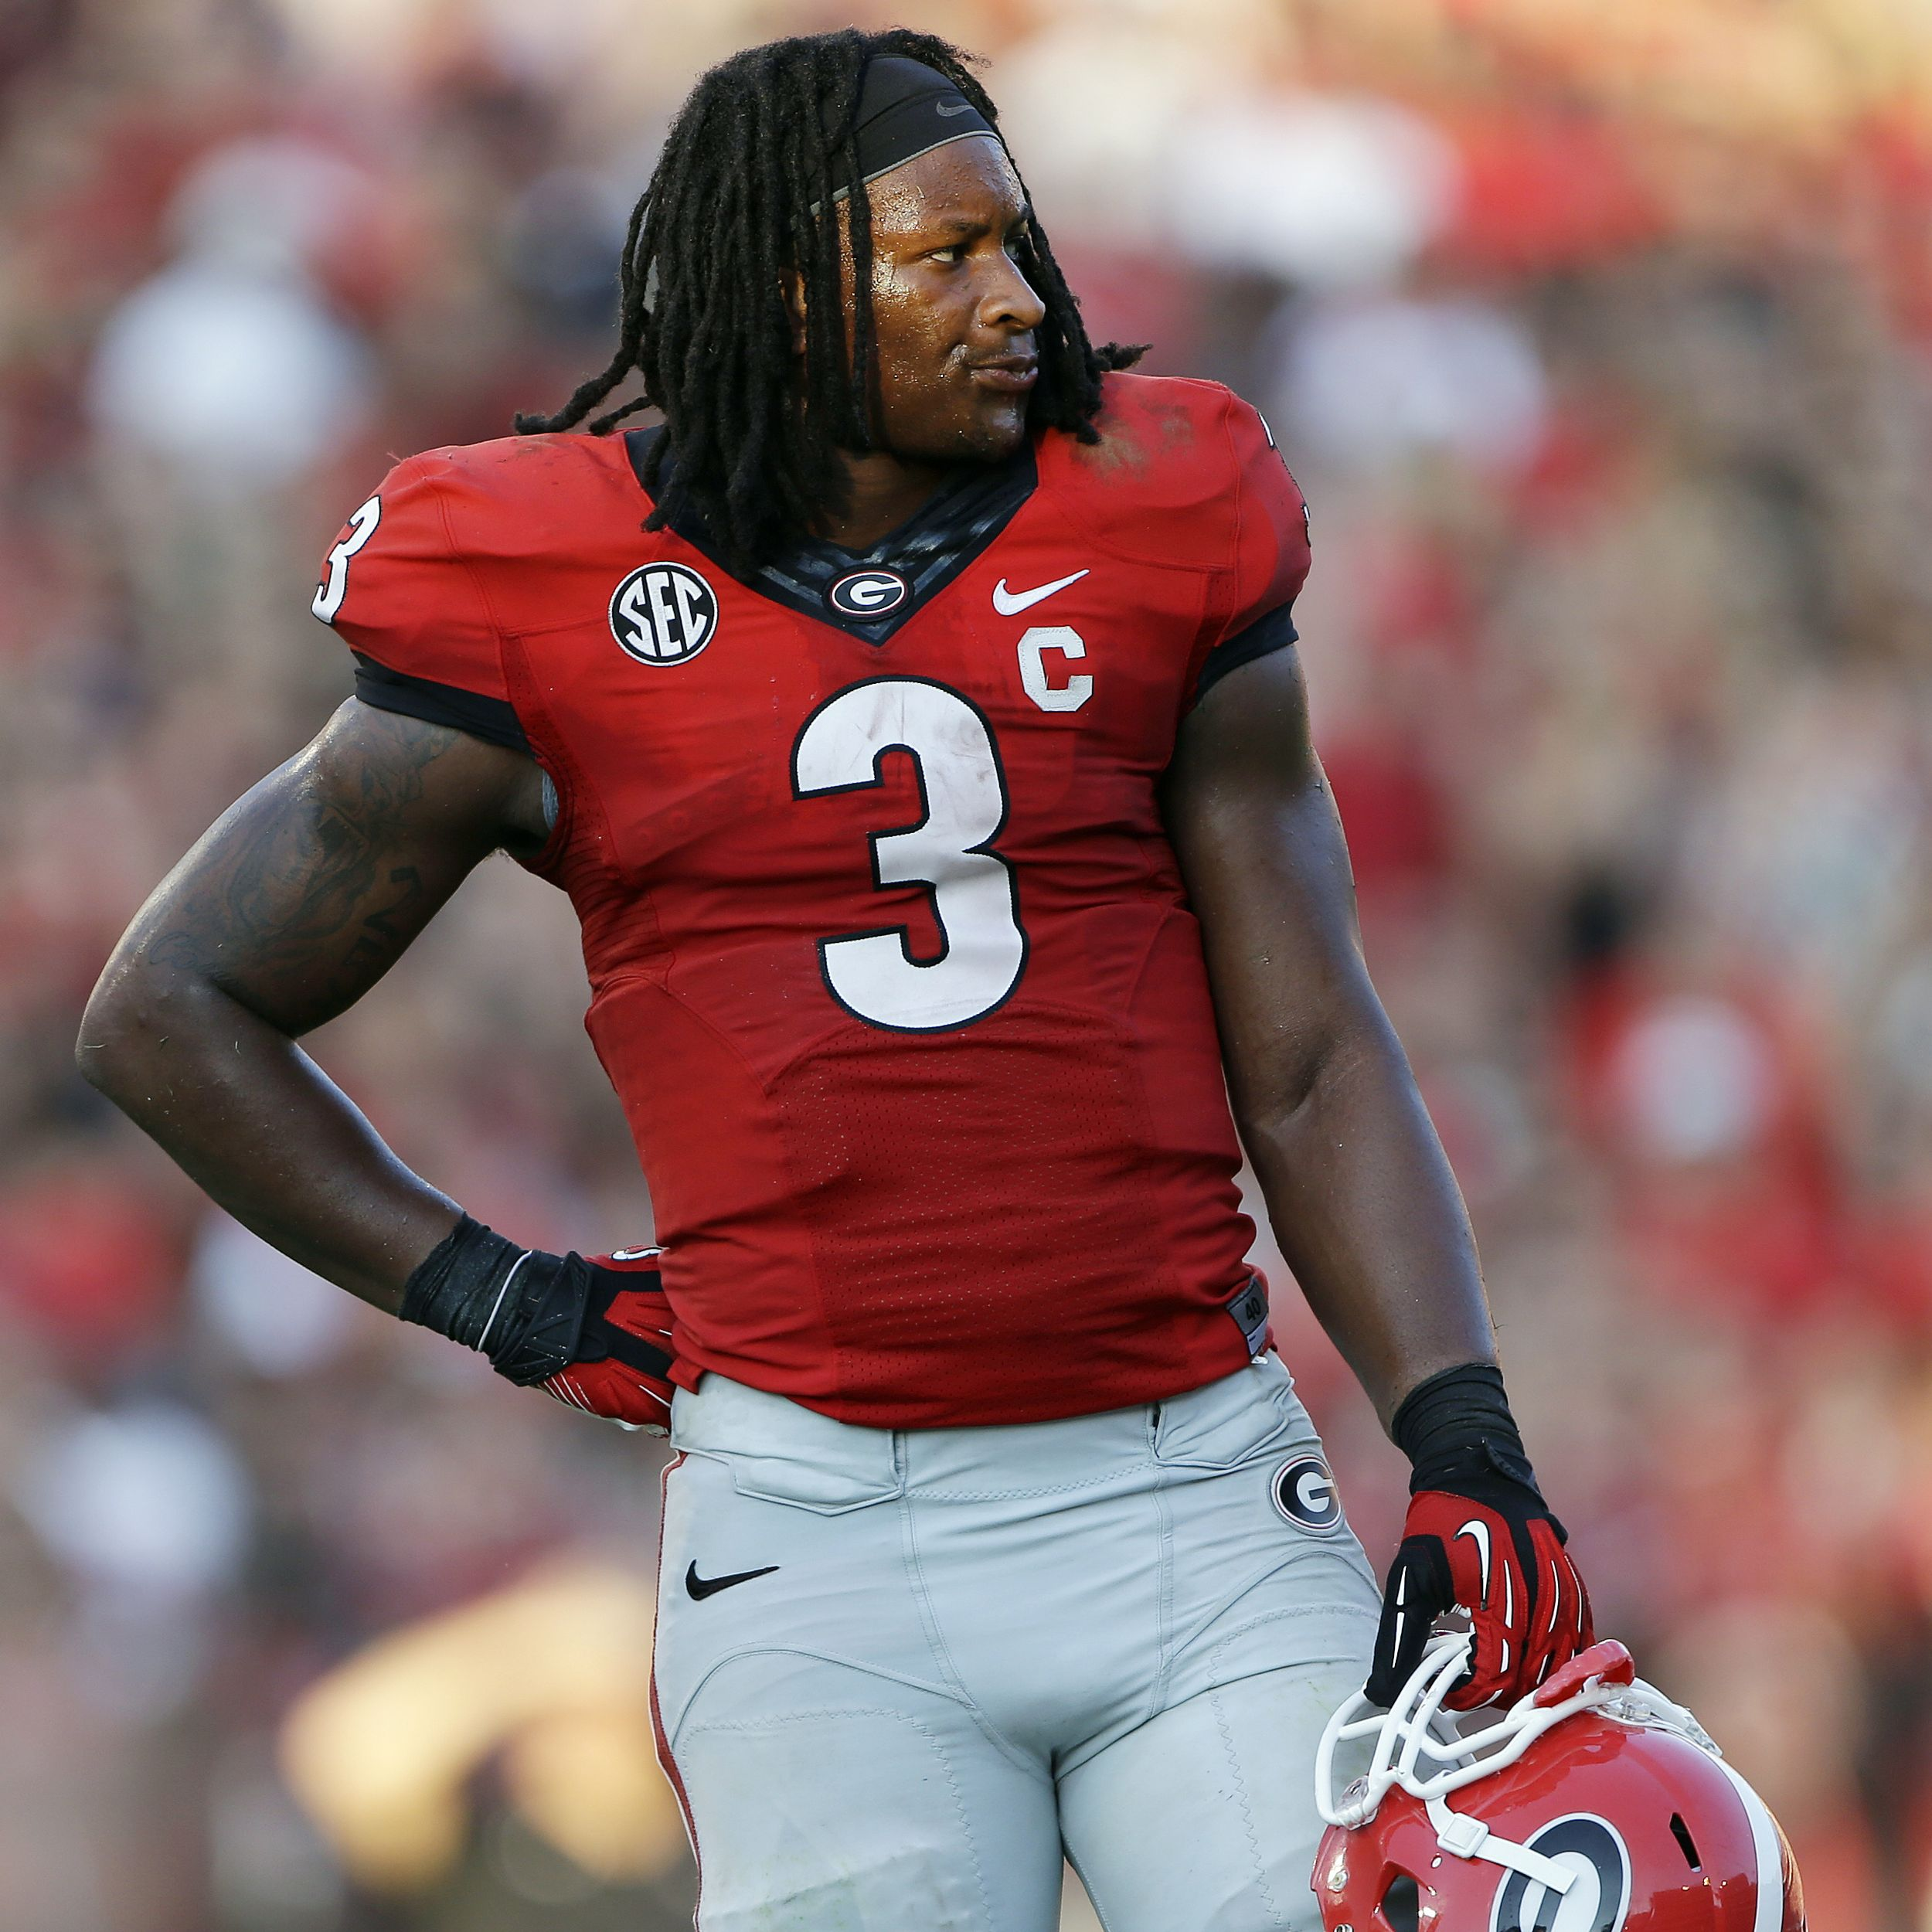 No 13 Georgia Suspends Rb Todd Gurley Indefinitely The Spokesman Review